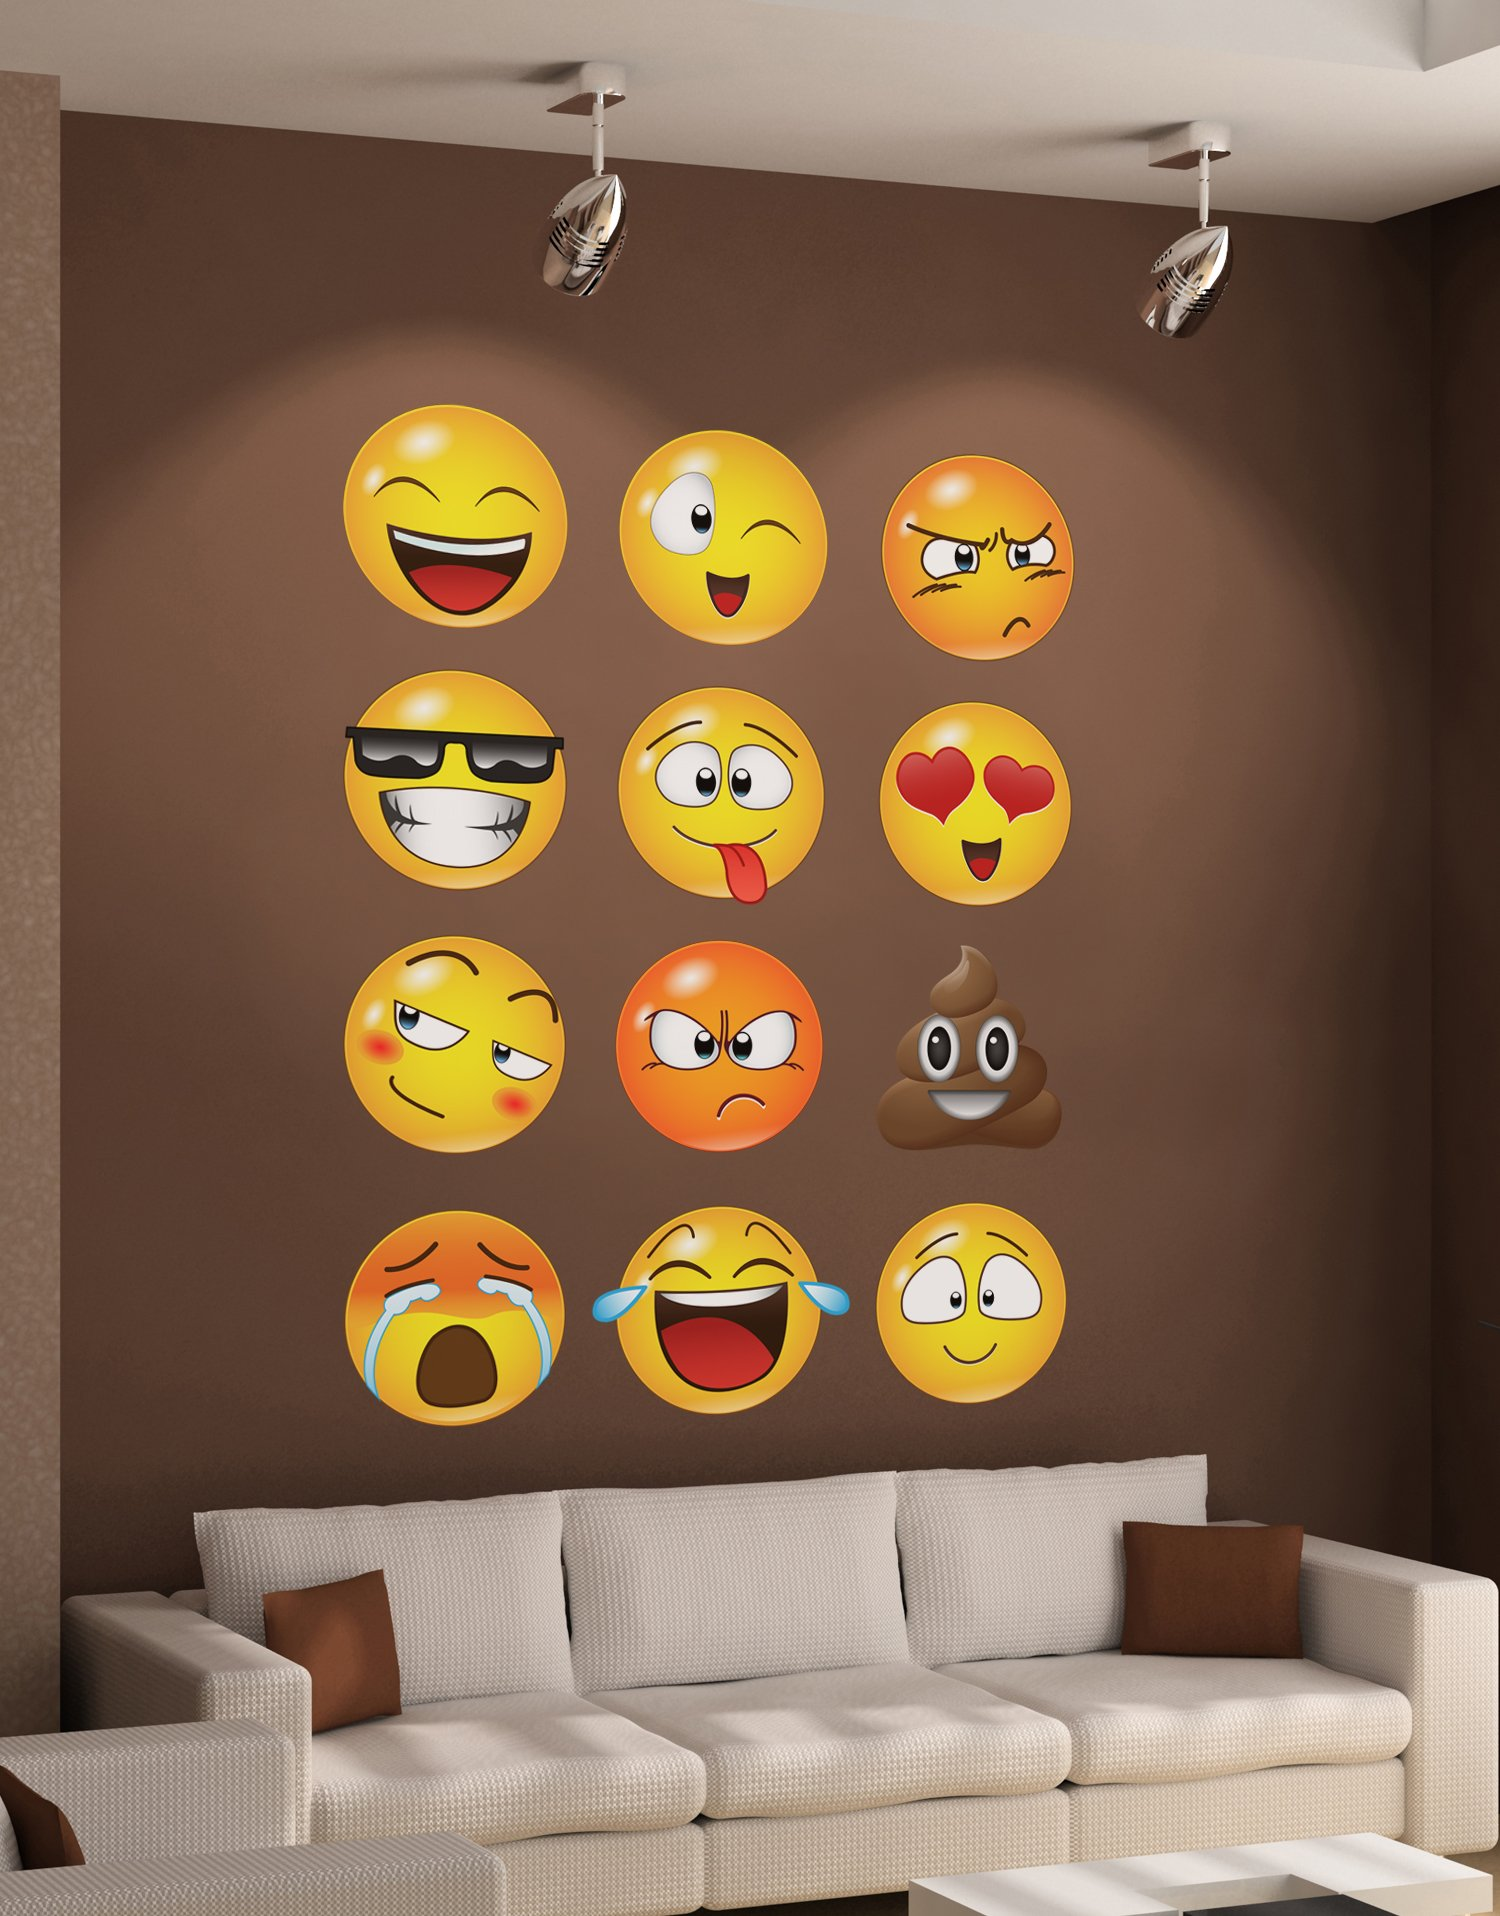 12 Large Emoji Wall Decal Faces Sticker #6052s 10in X 10in Each by Stickerbrand (Image #5)